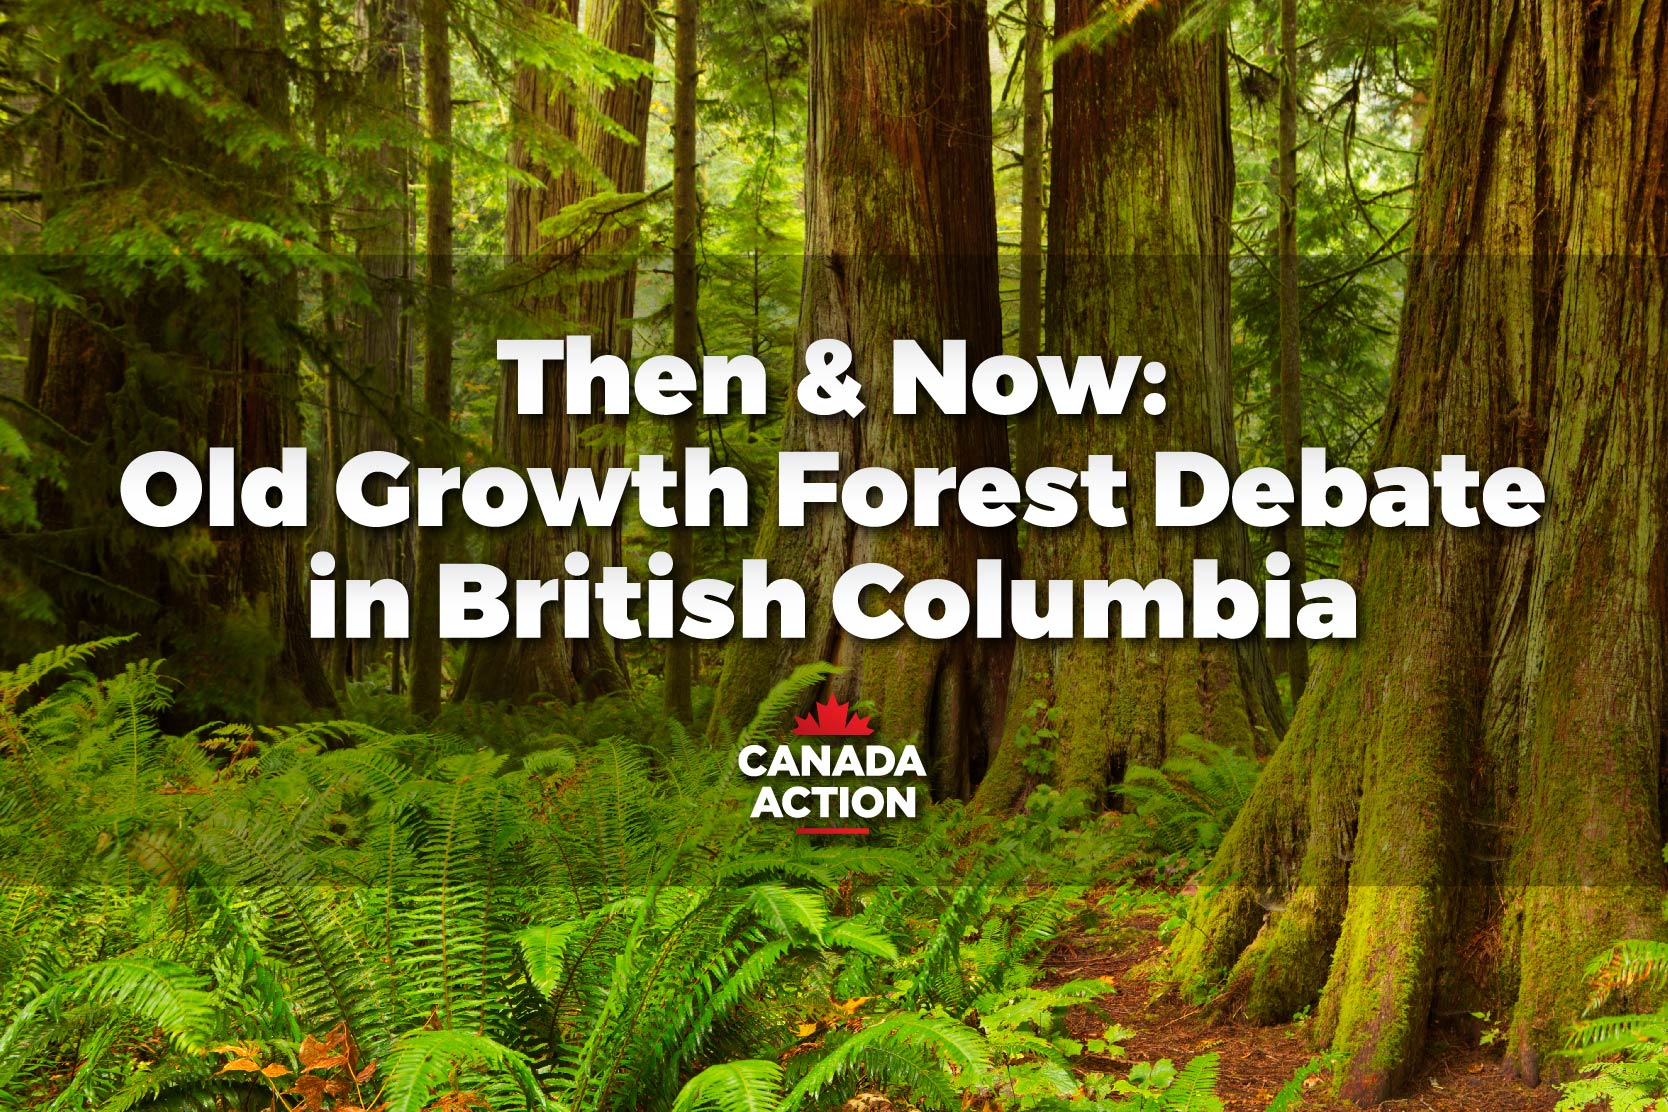 old growth forest debate british columbia canada-01